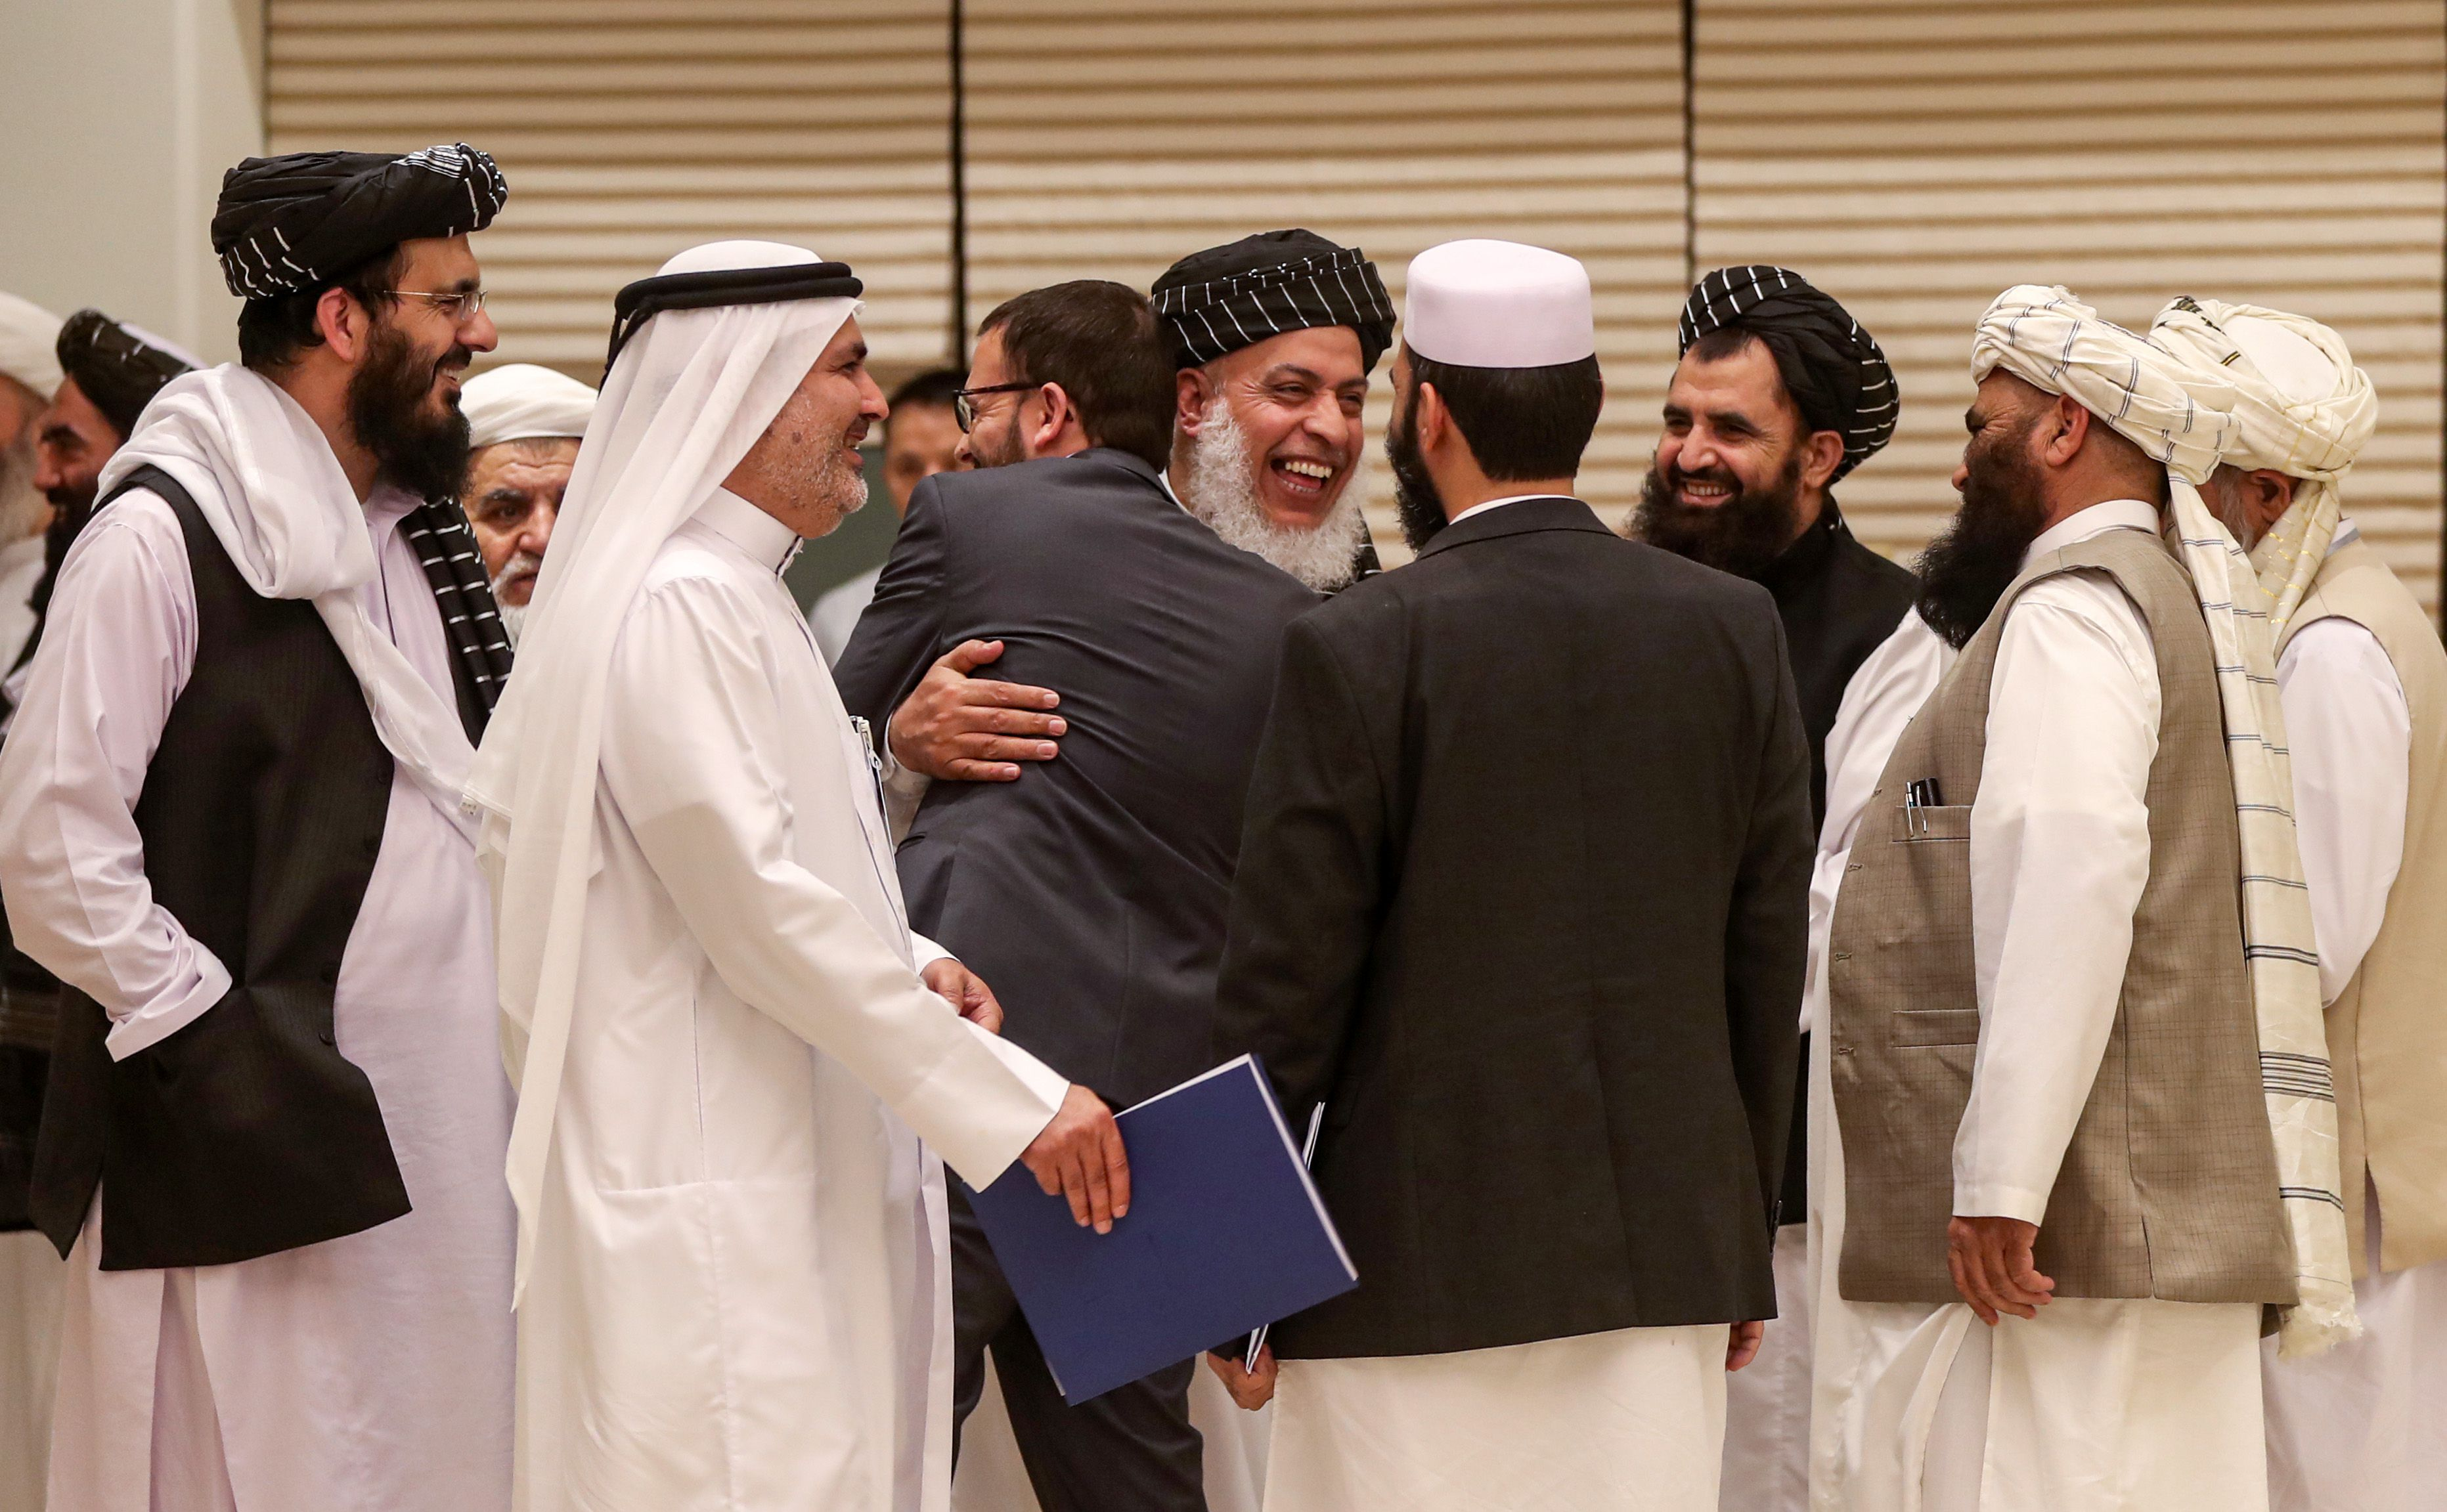 U.S. and Taliban announce first step in Afghanistan peace process - Axios